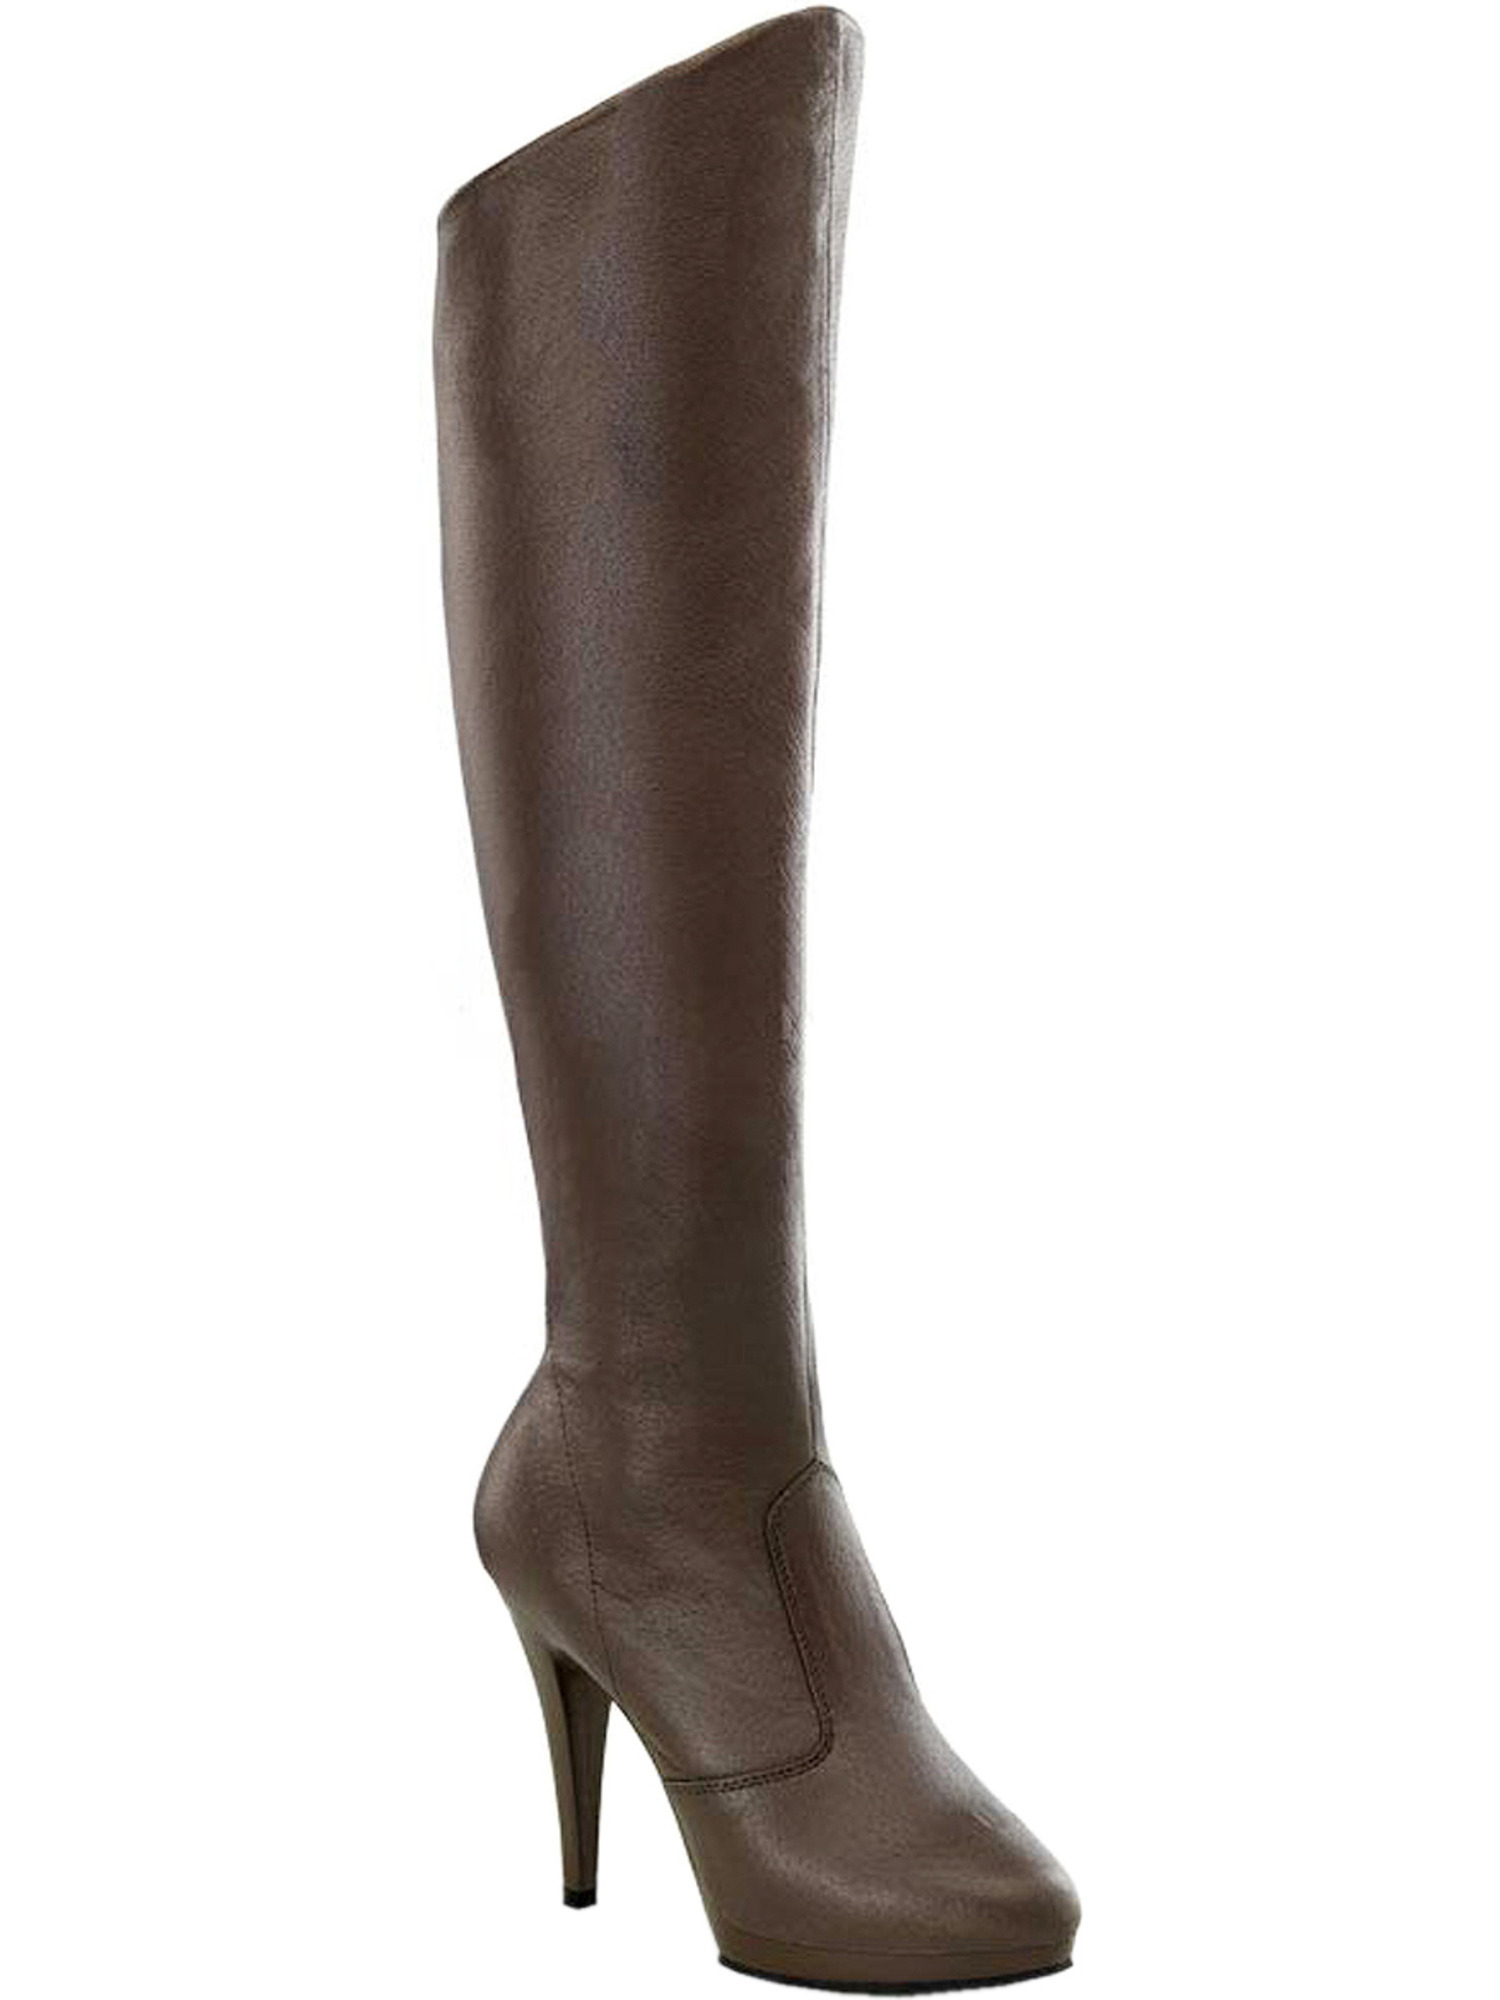 4 1/2 Inch Sexy High Heel Knee High Boots Pig Leather Brown